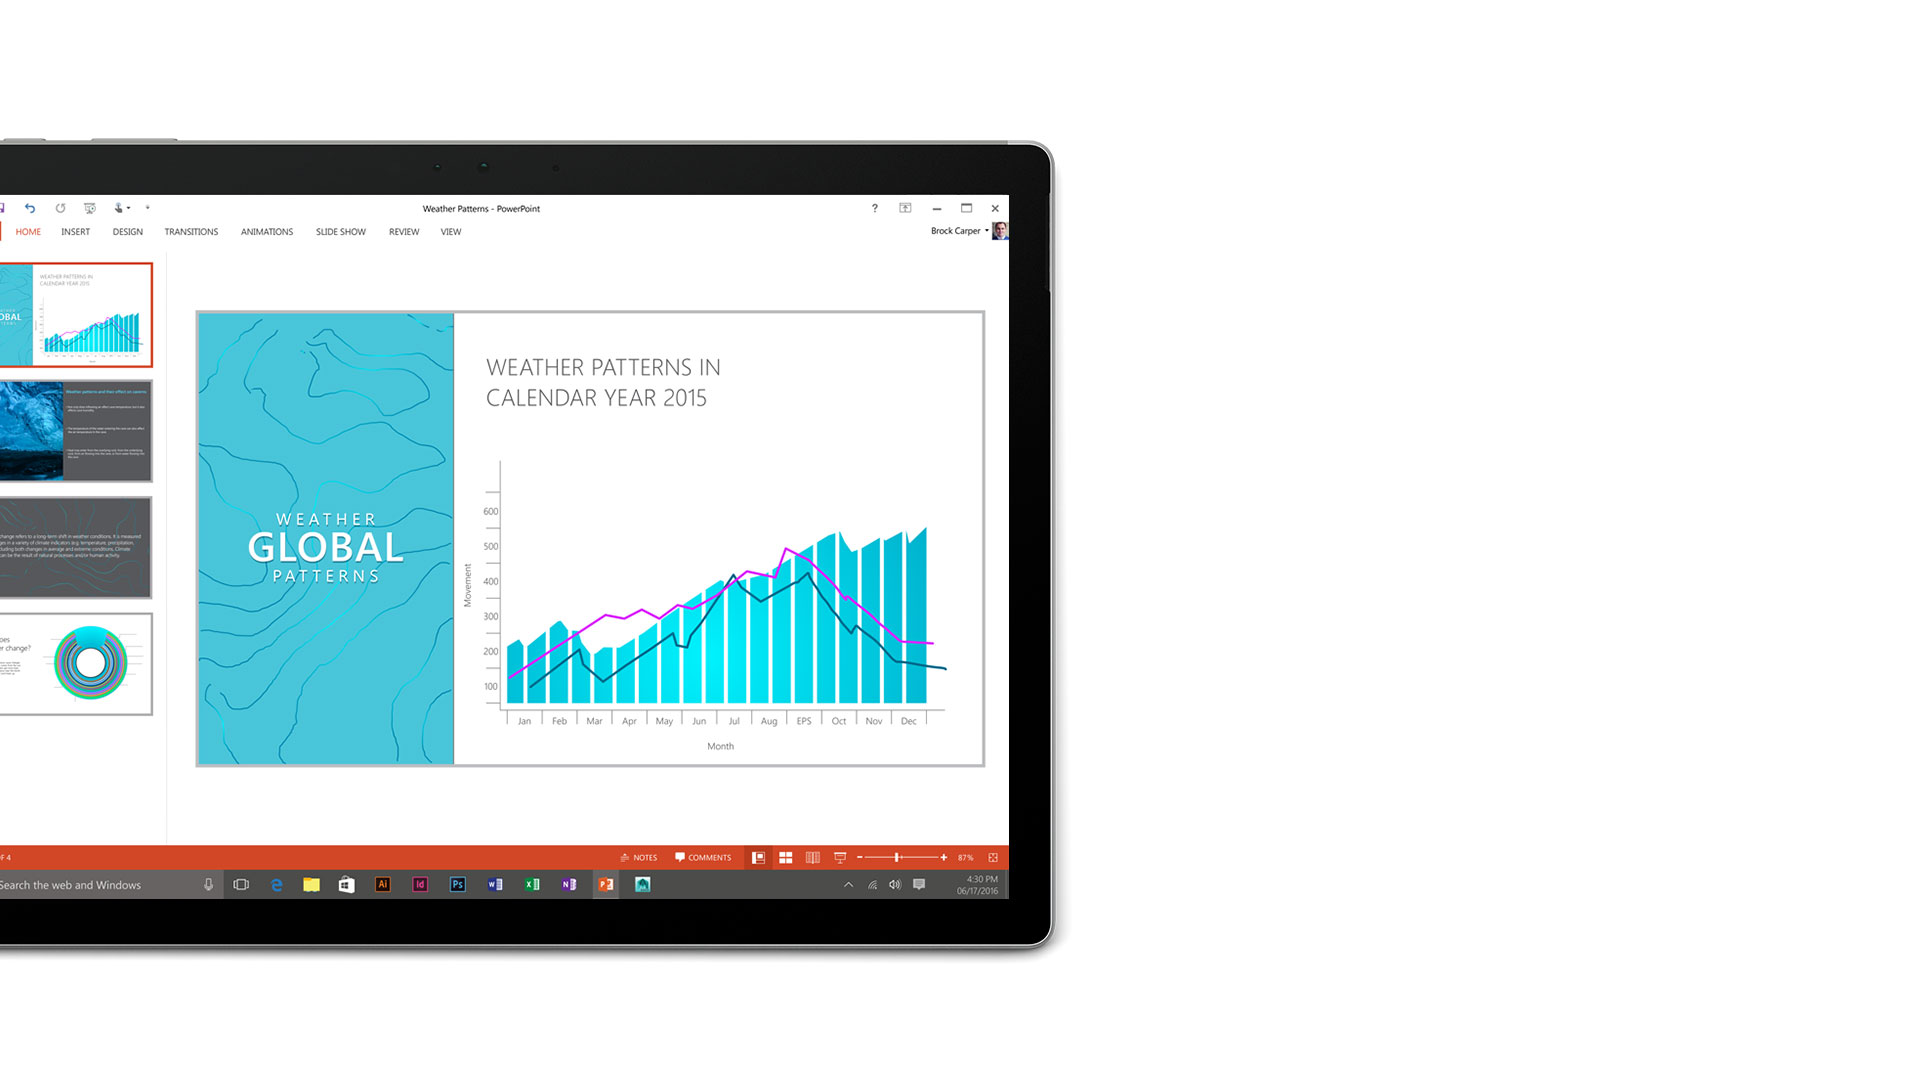 Microsoft PowerPoint open on the Surface Book display